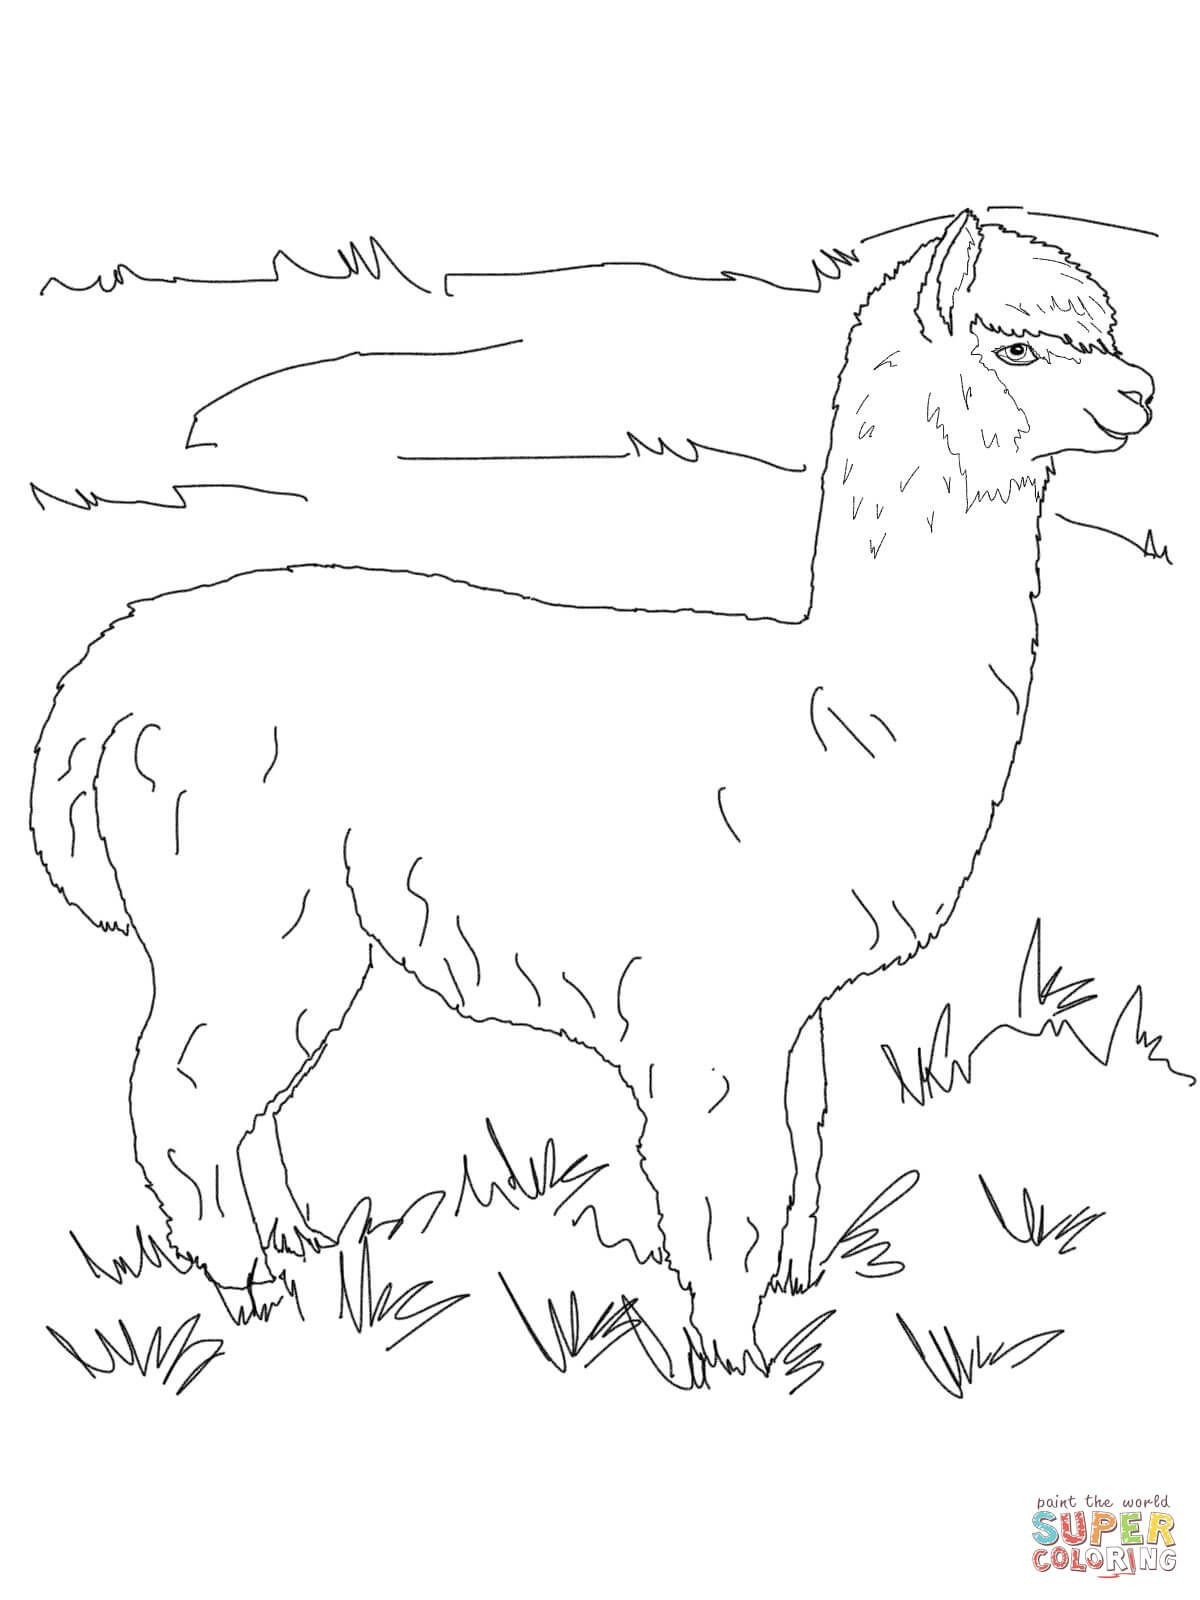 Kentucky derby coloring pages at getdrawings com free for personal